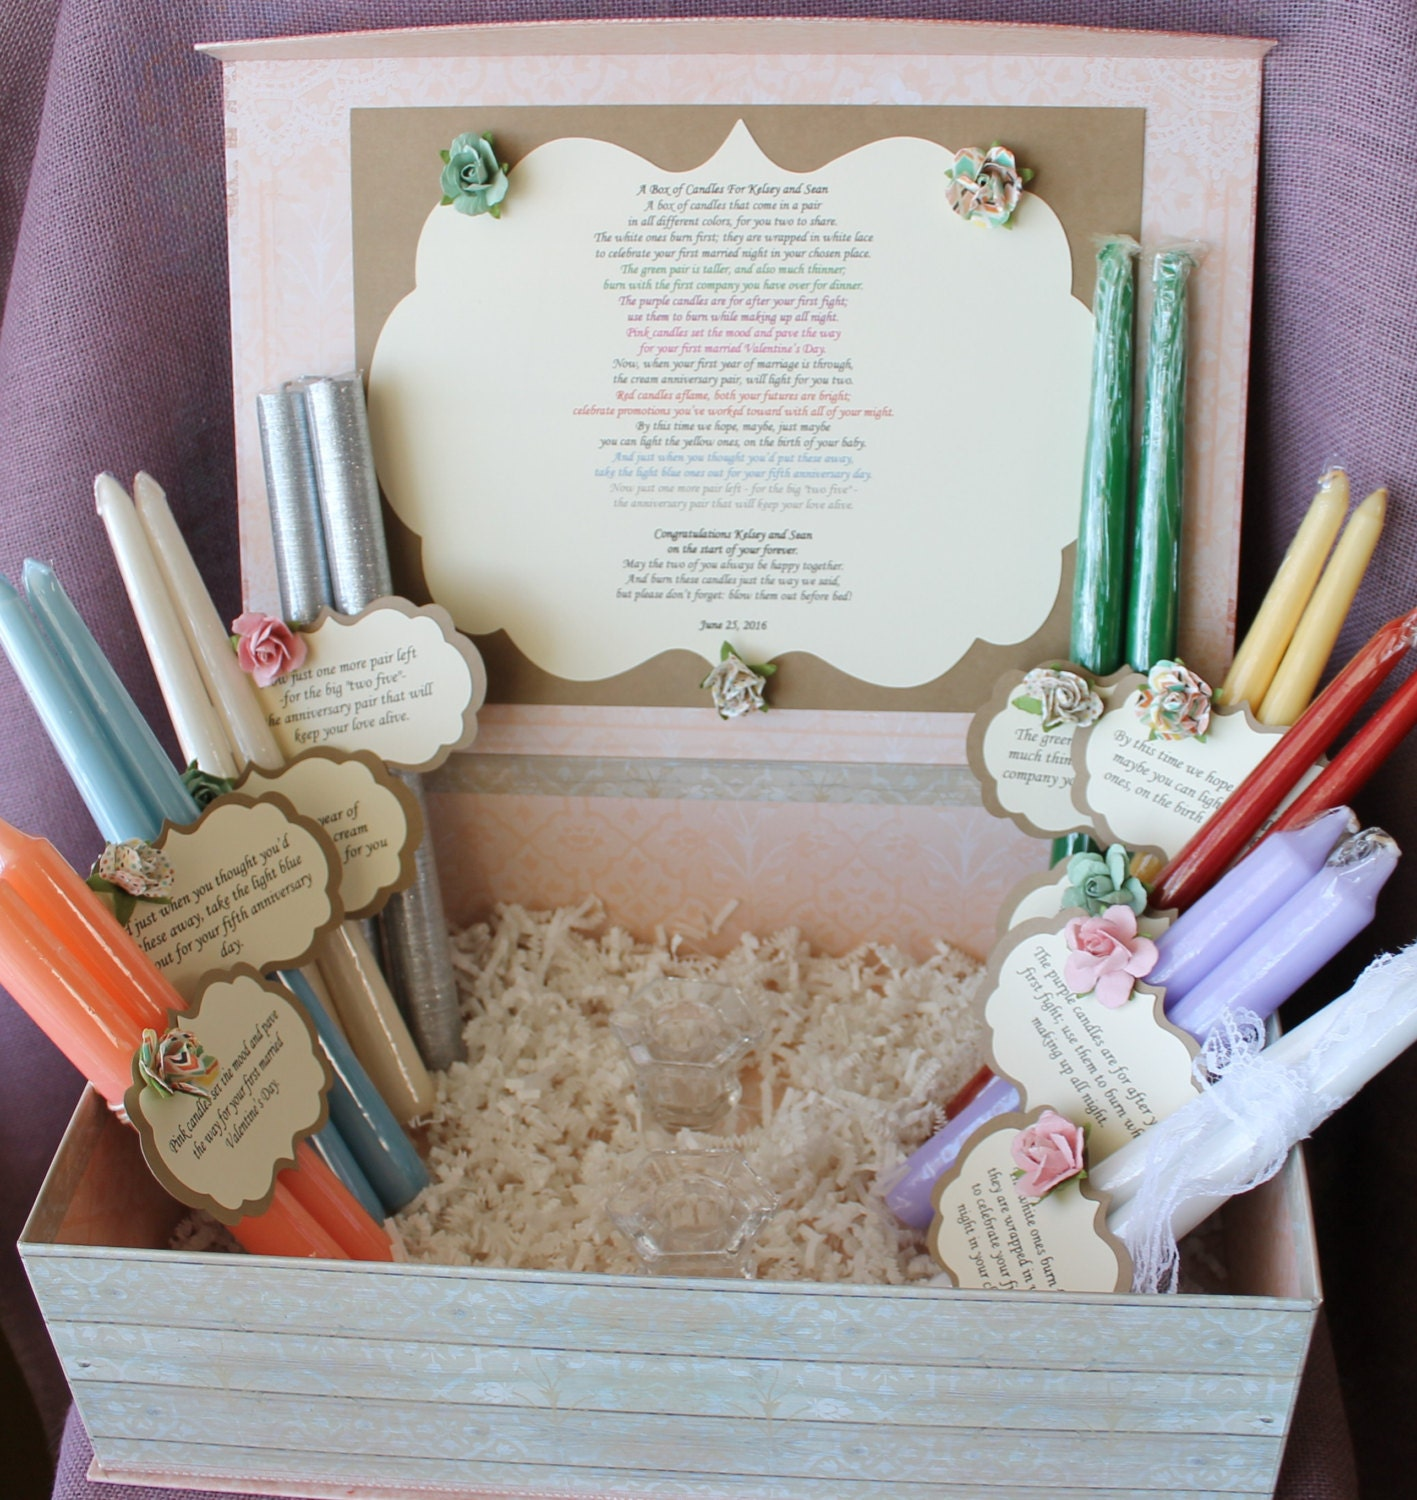 Wedding Shower Gift Basket Poem : Wedding Shower Candle Poem Gift Set. Bridal candle basket.